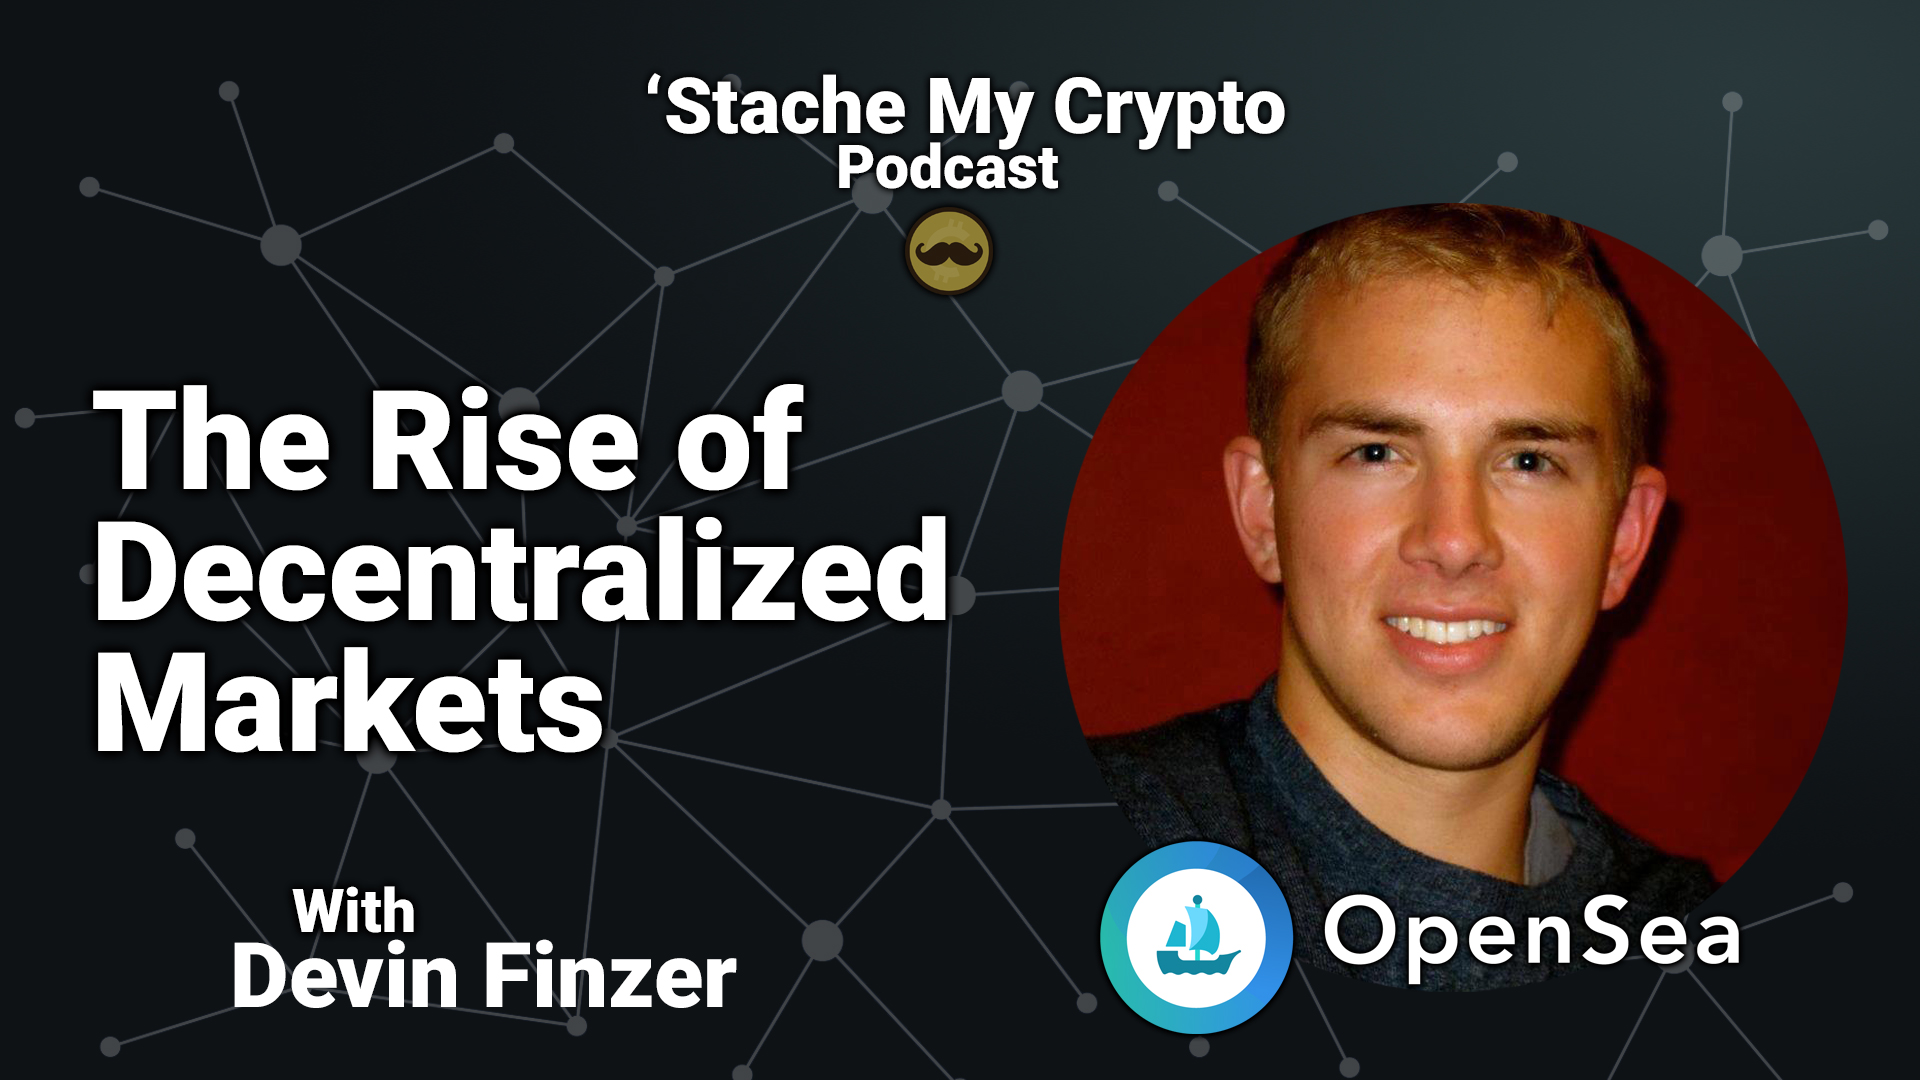 stache my crypto podcast devin finzer opensea open sea nft cryptocurrency